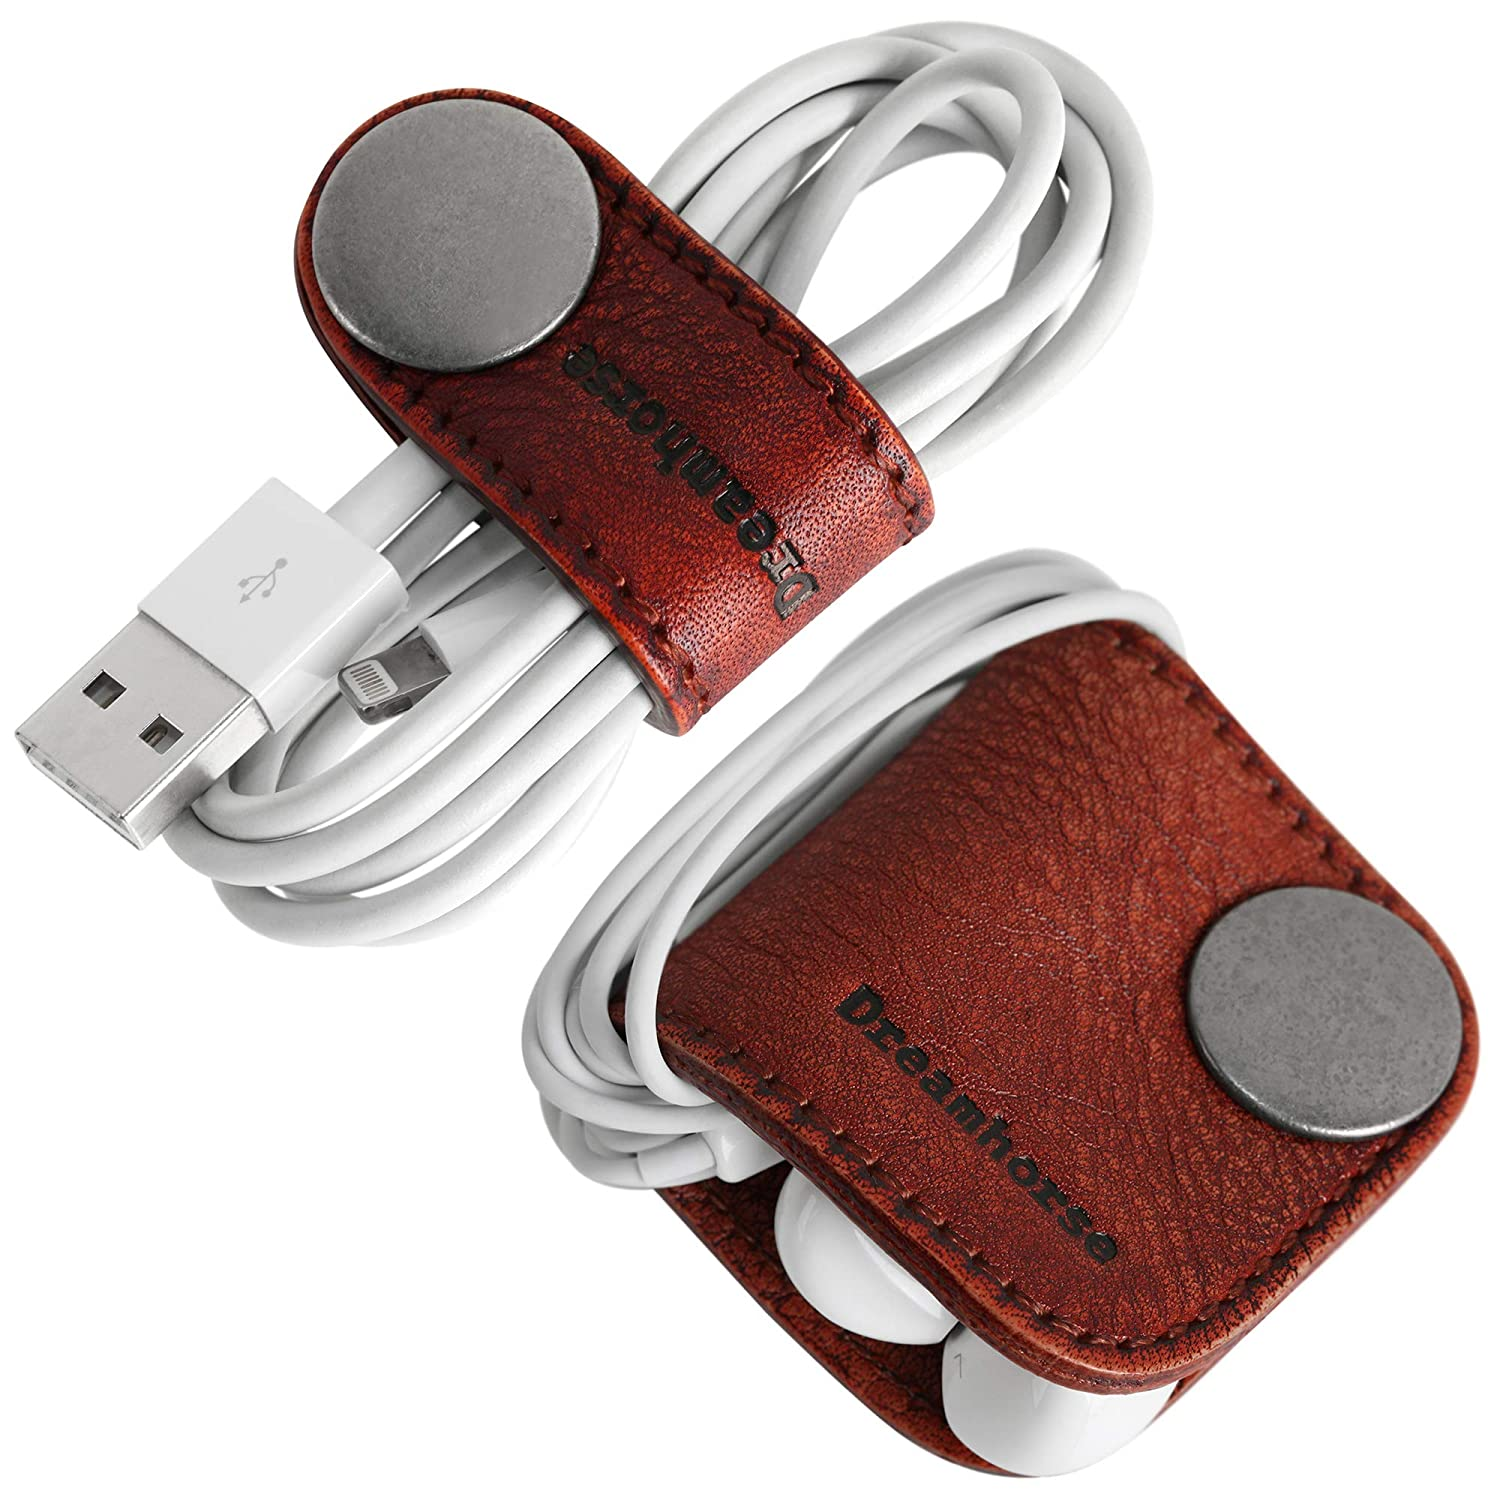 Dreamhorse Cord Organizer Earbud Holders Earphone Wrap Earphones Organizer Headset Headphone Wrap Winder Cord Manager Cable Winder with Genuine Leather Pack of 2 Red